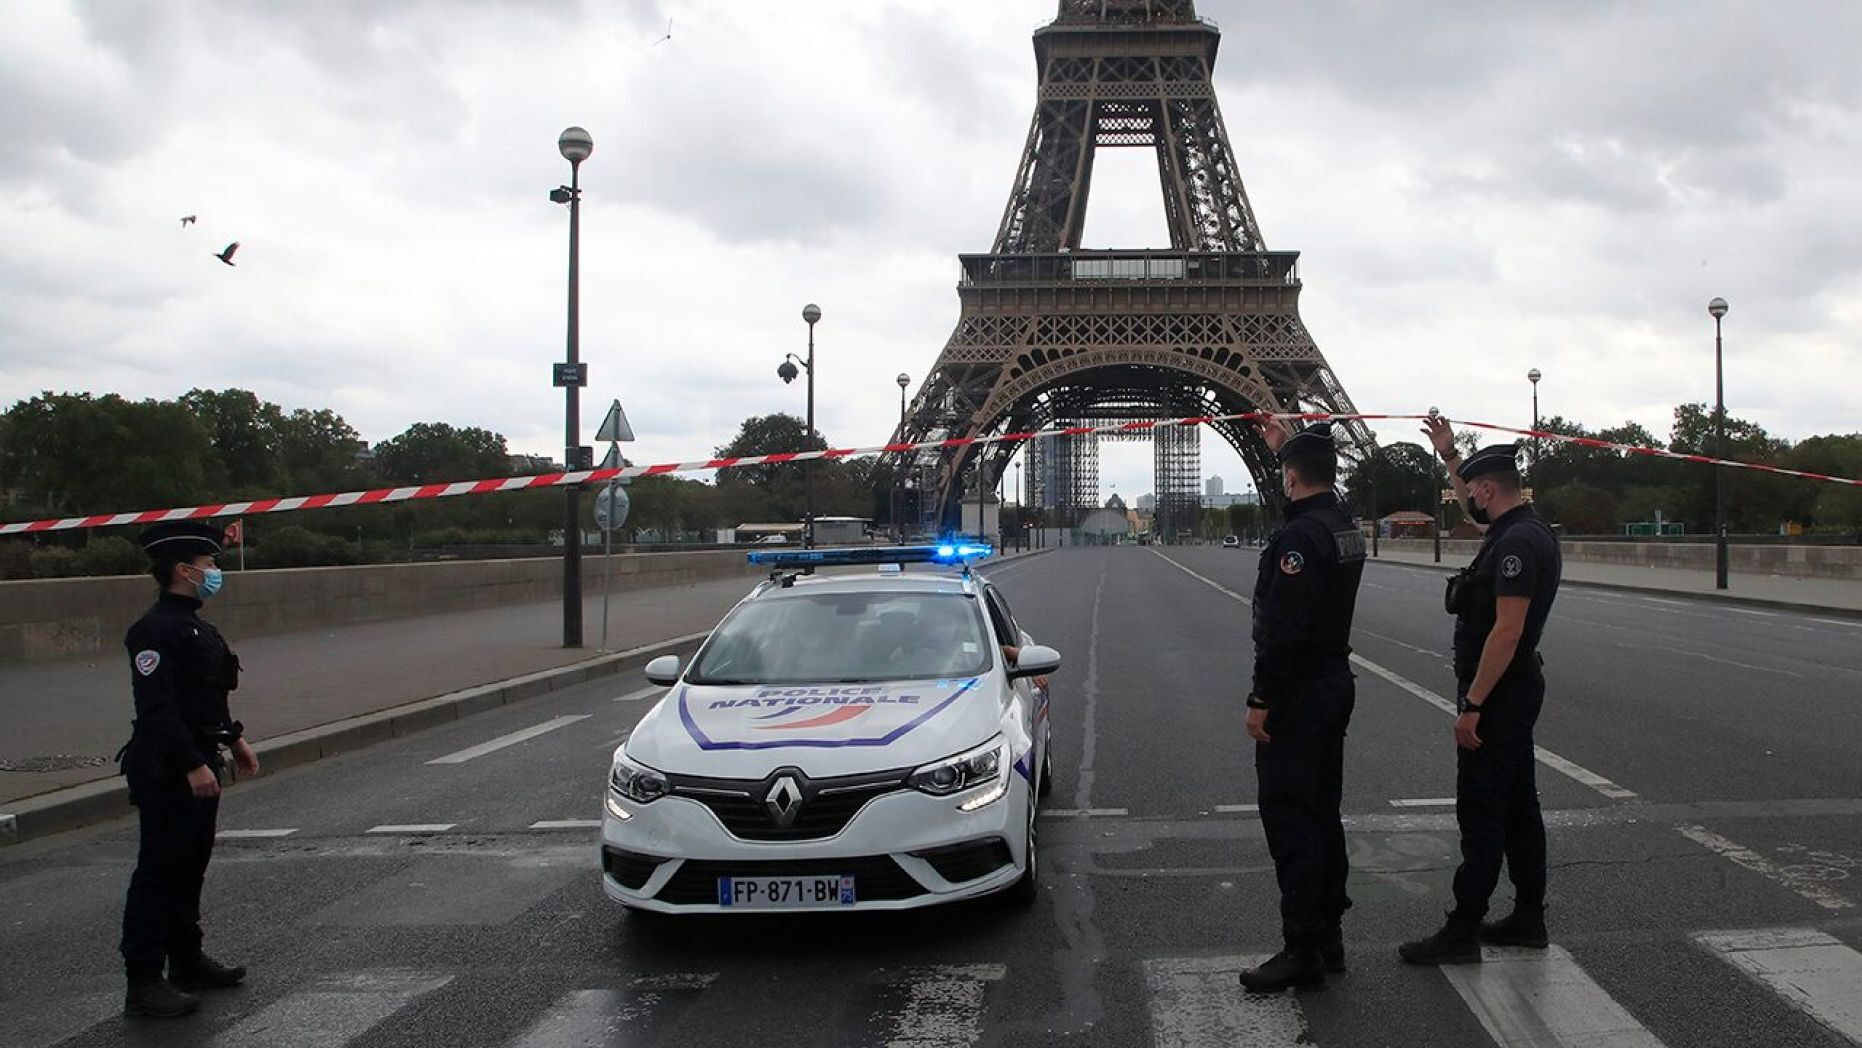 eiffel tower briefly evacuated after bomb hoax